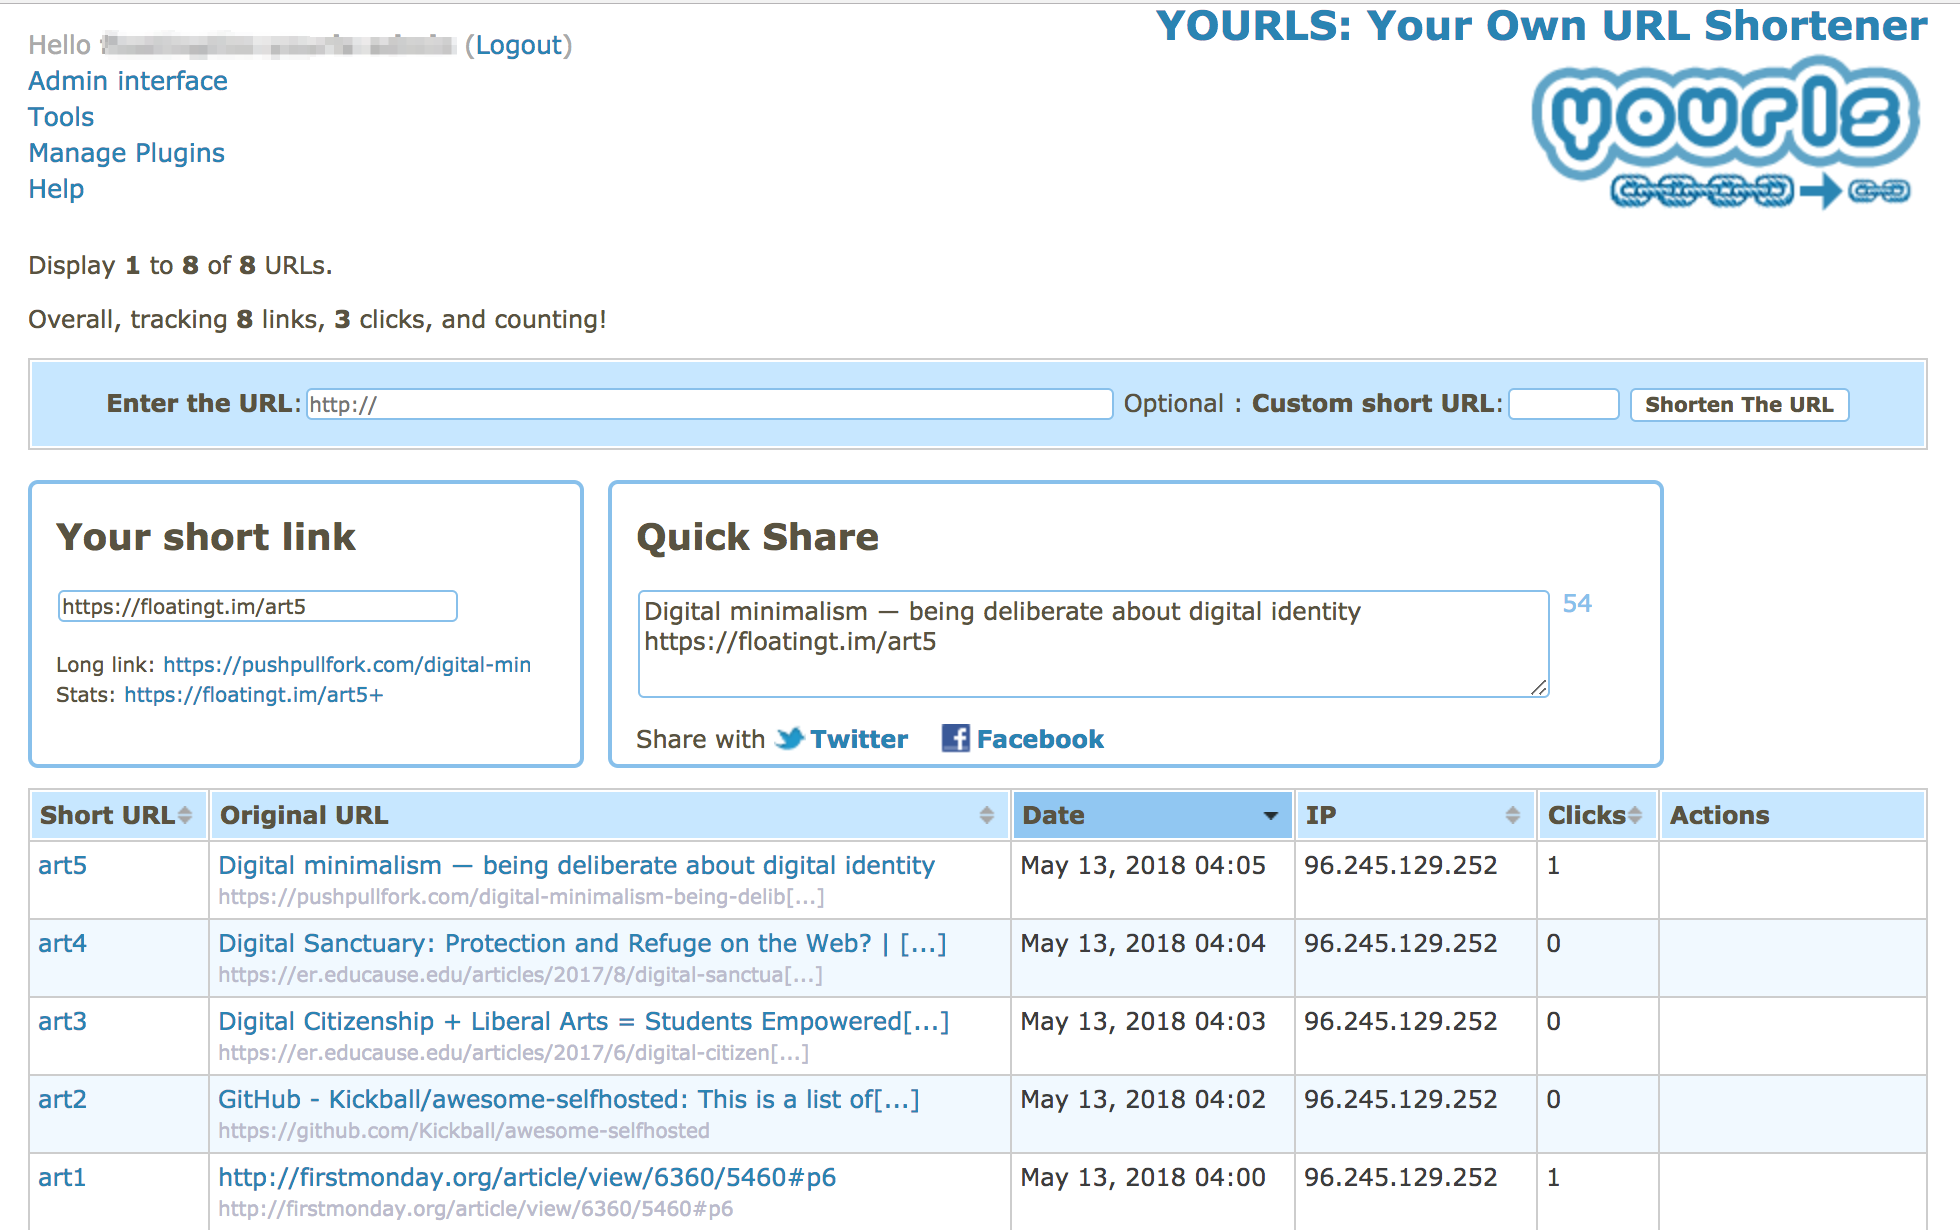 YOURLS administration area screen capture